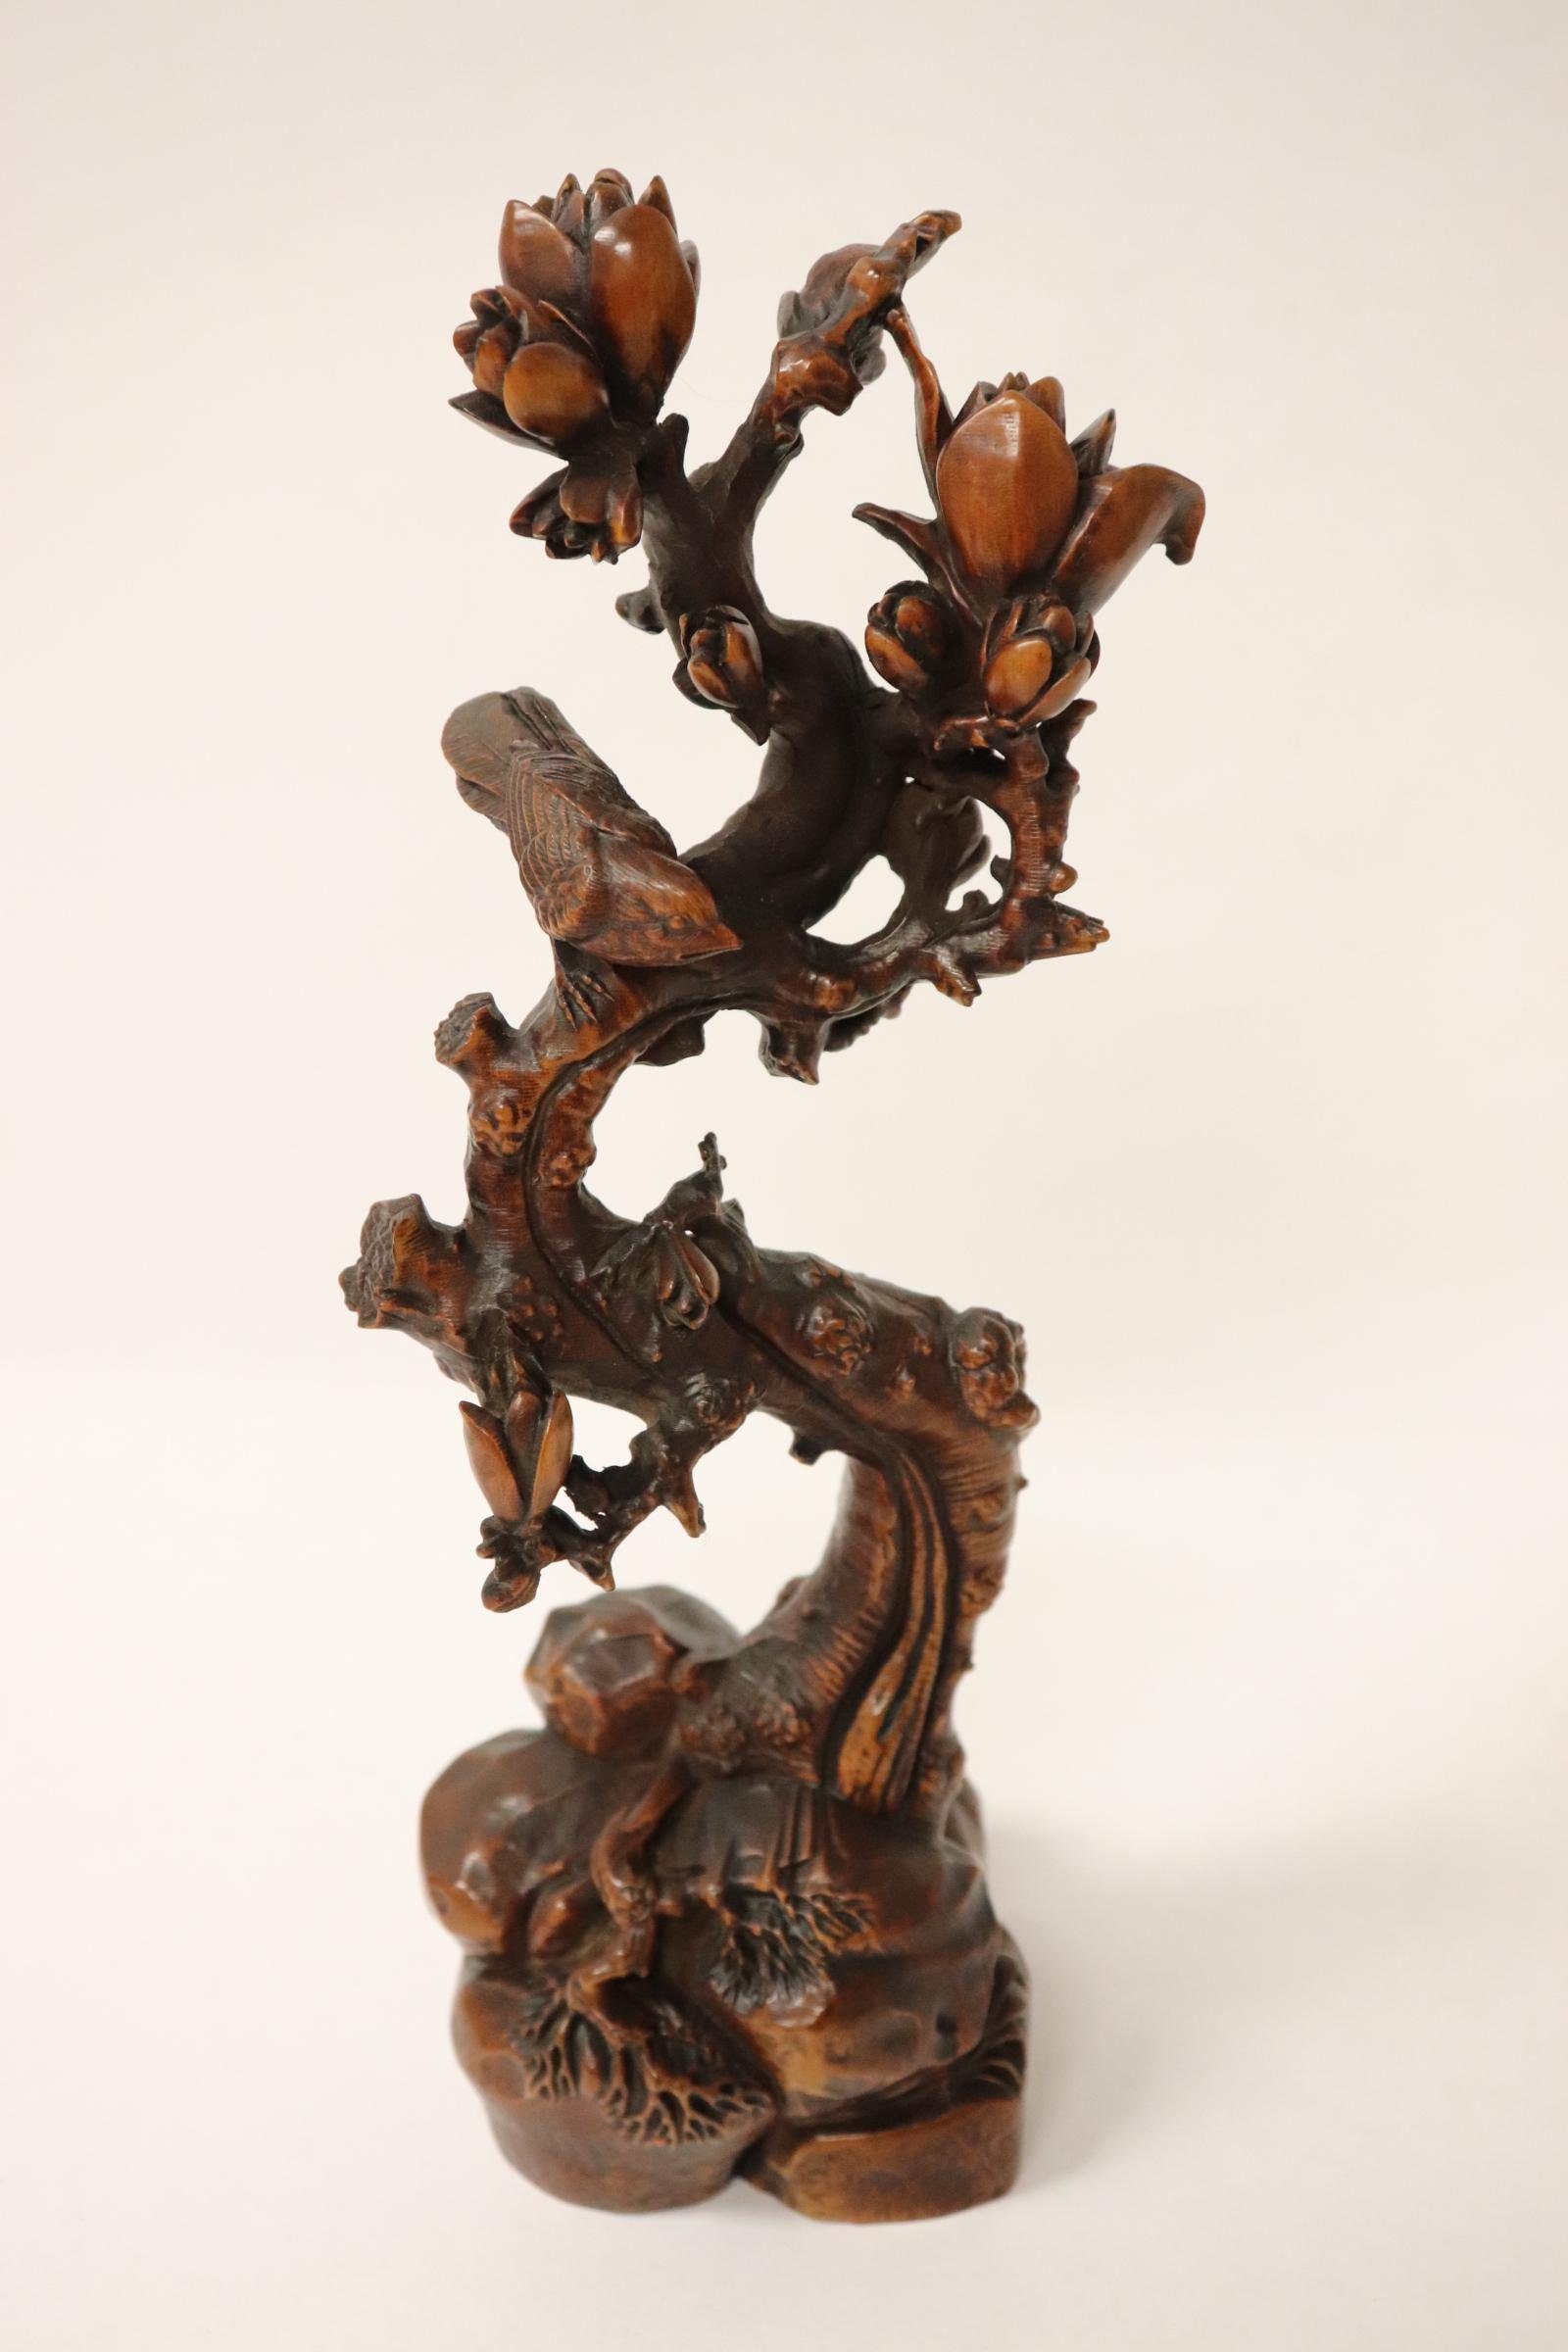 Chinese wood carving depicting bird on tree